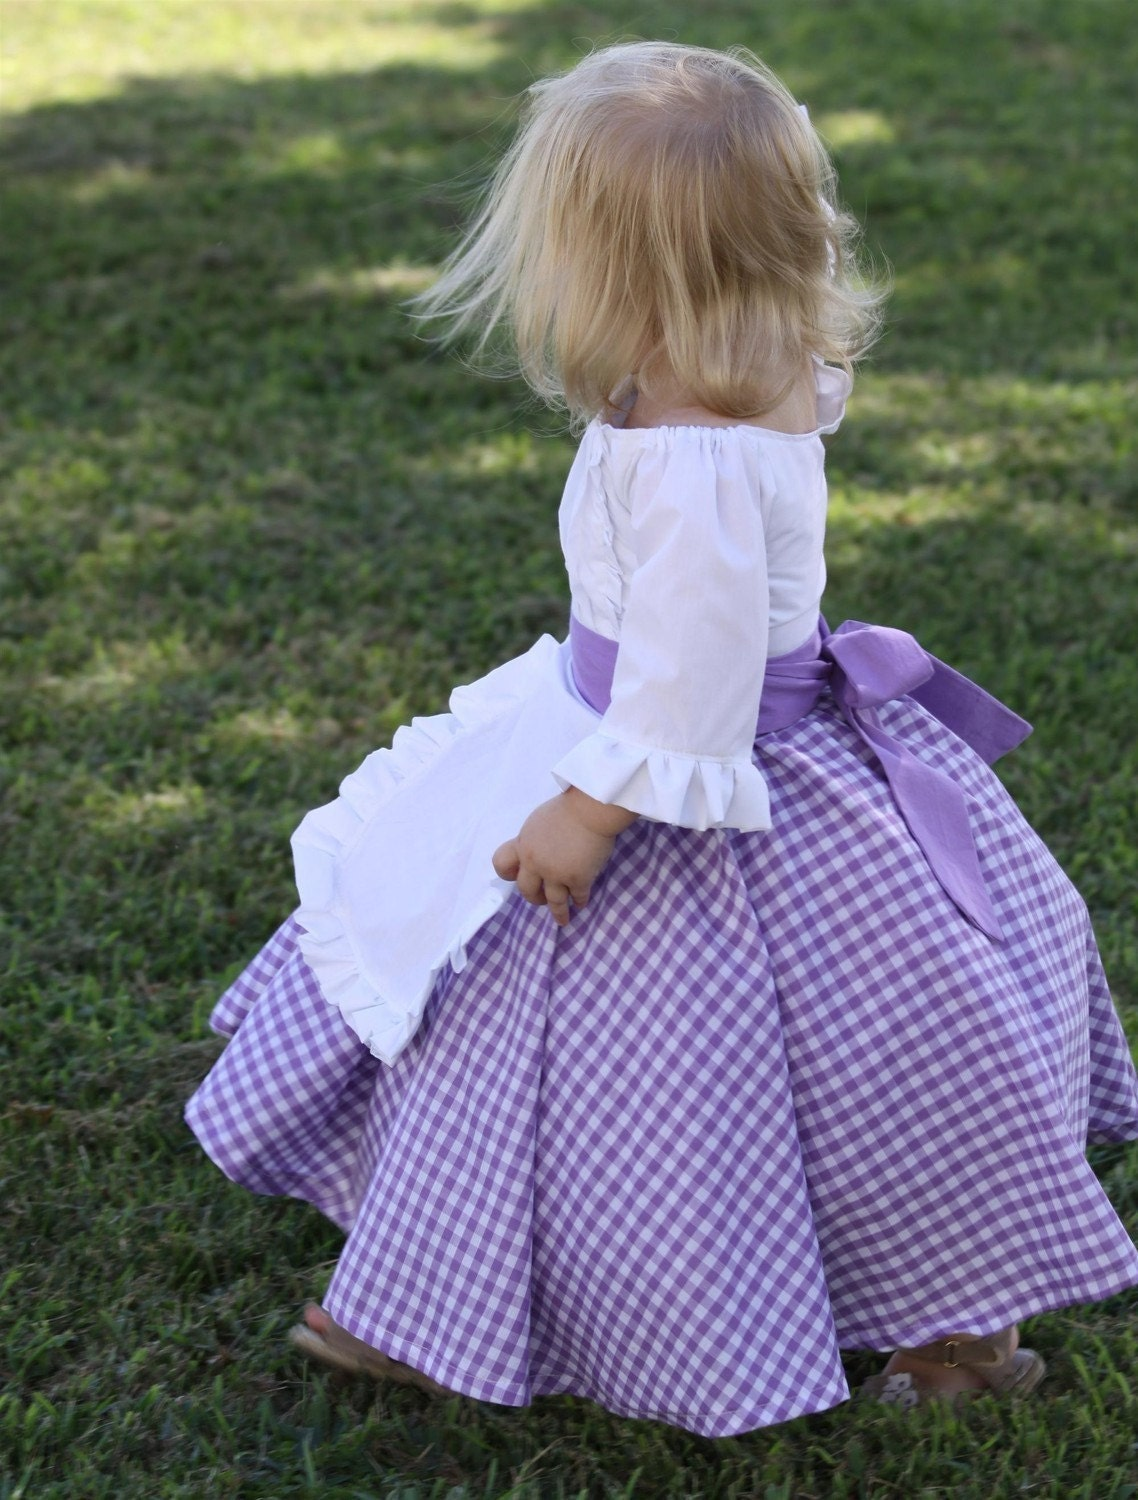 19th Century Inspired Costume Dress - Colonial, Prairie, Pioneer, Tea Party, Halloween